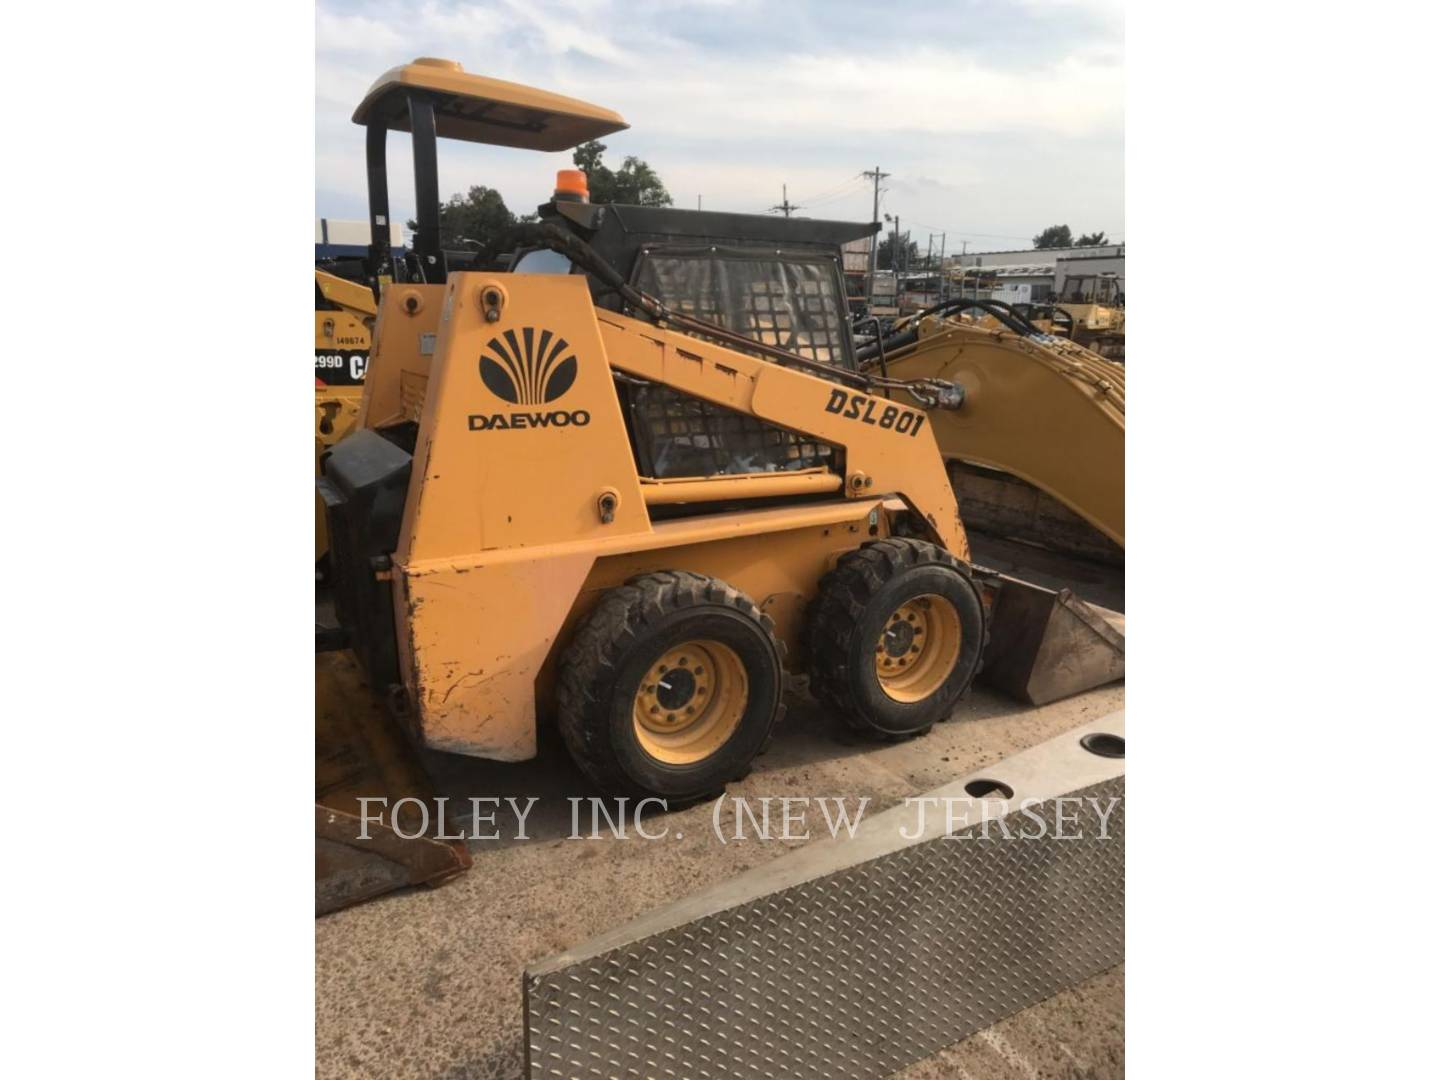 1998 Daewoo DSL801 Skid Steer Loader for sale in PISCATAWAY, NJ